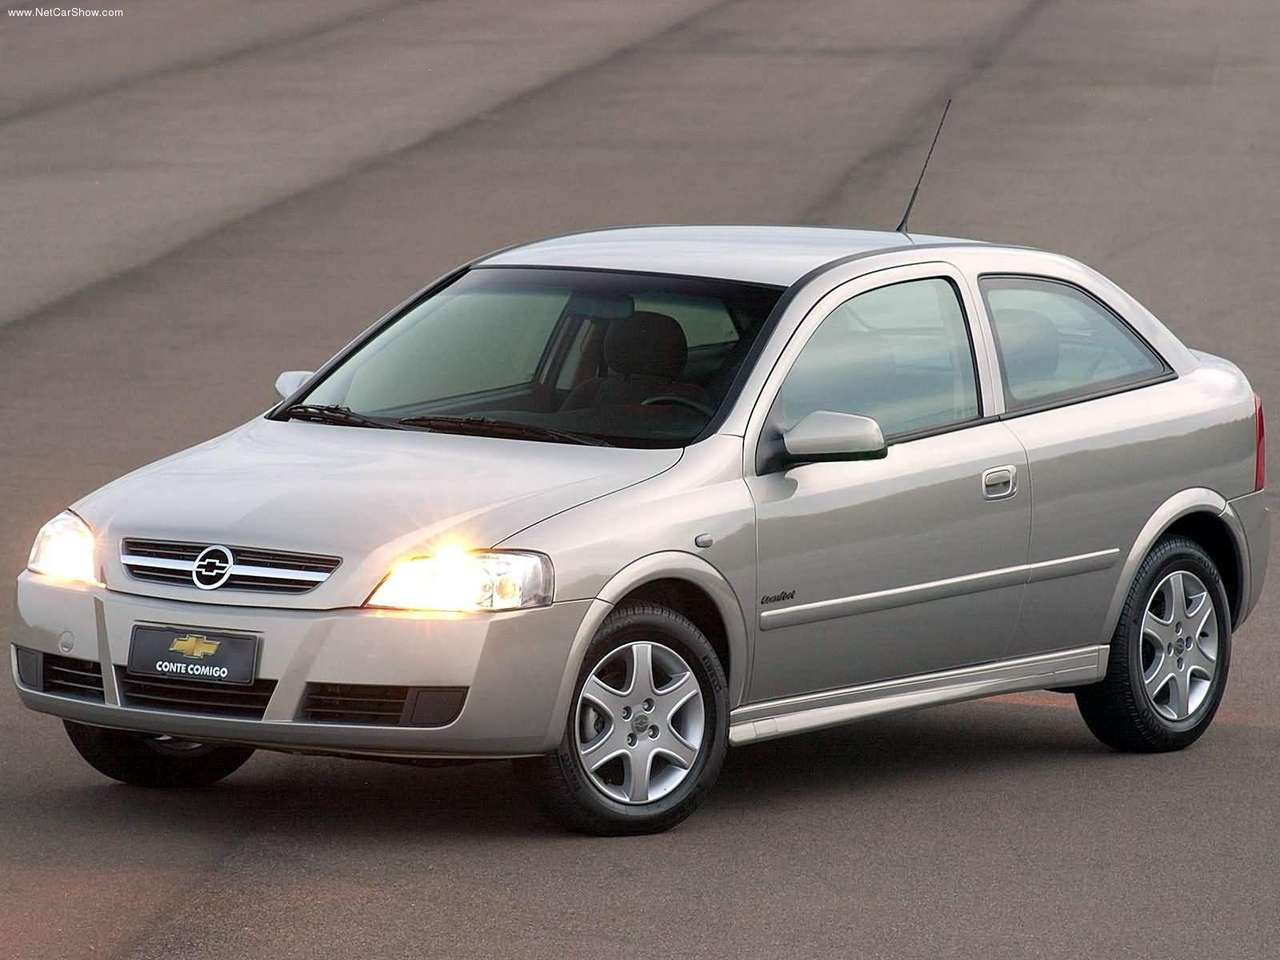 2005 Chevrolet Astra 2.0 Flexpower Comfort